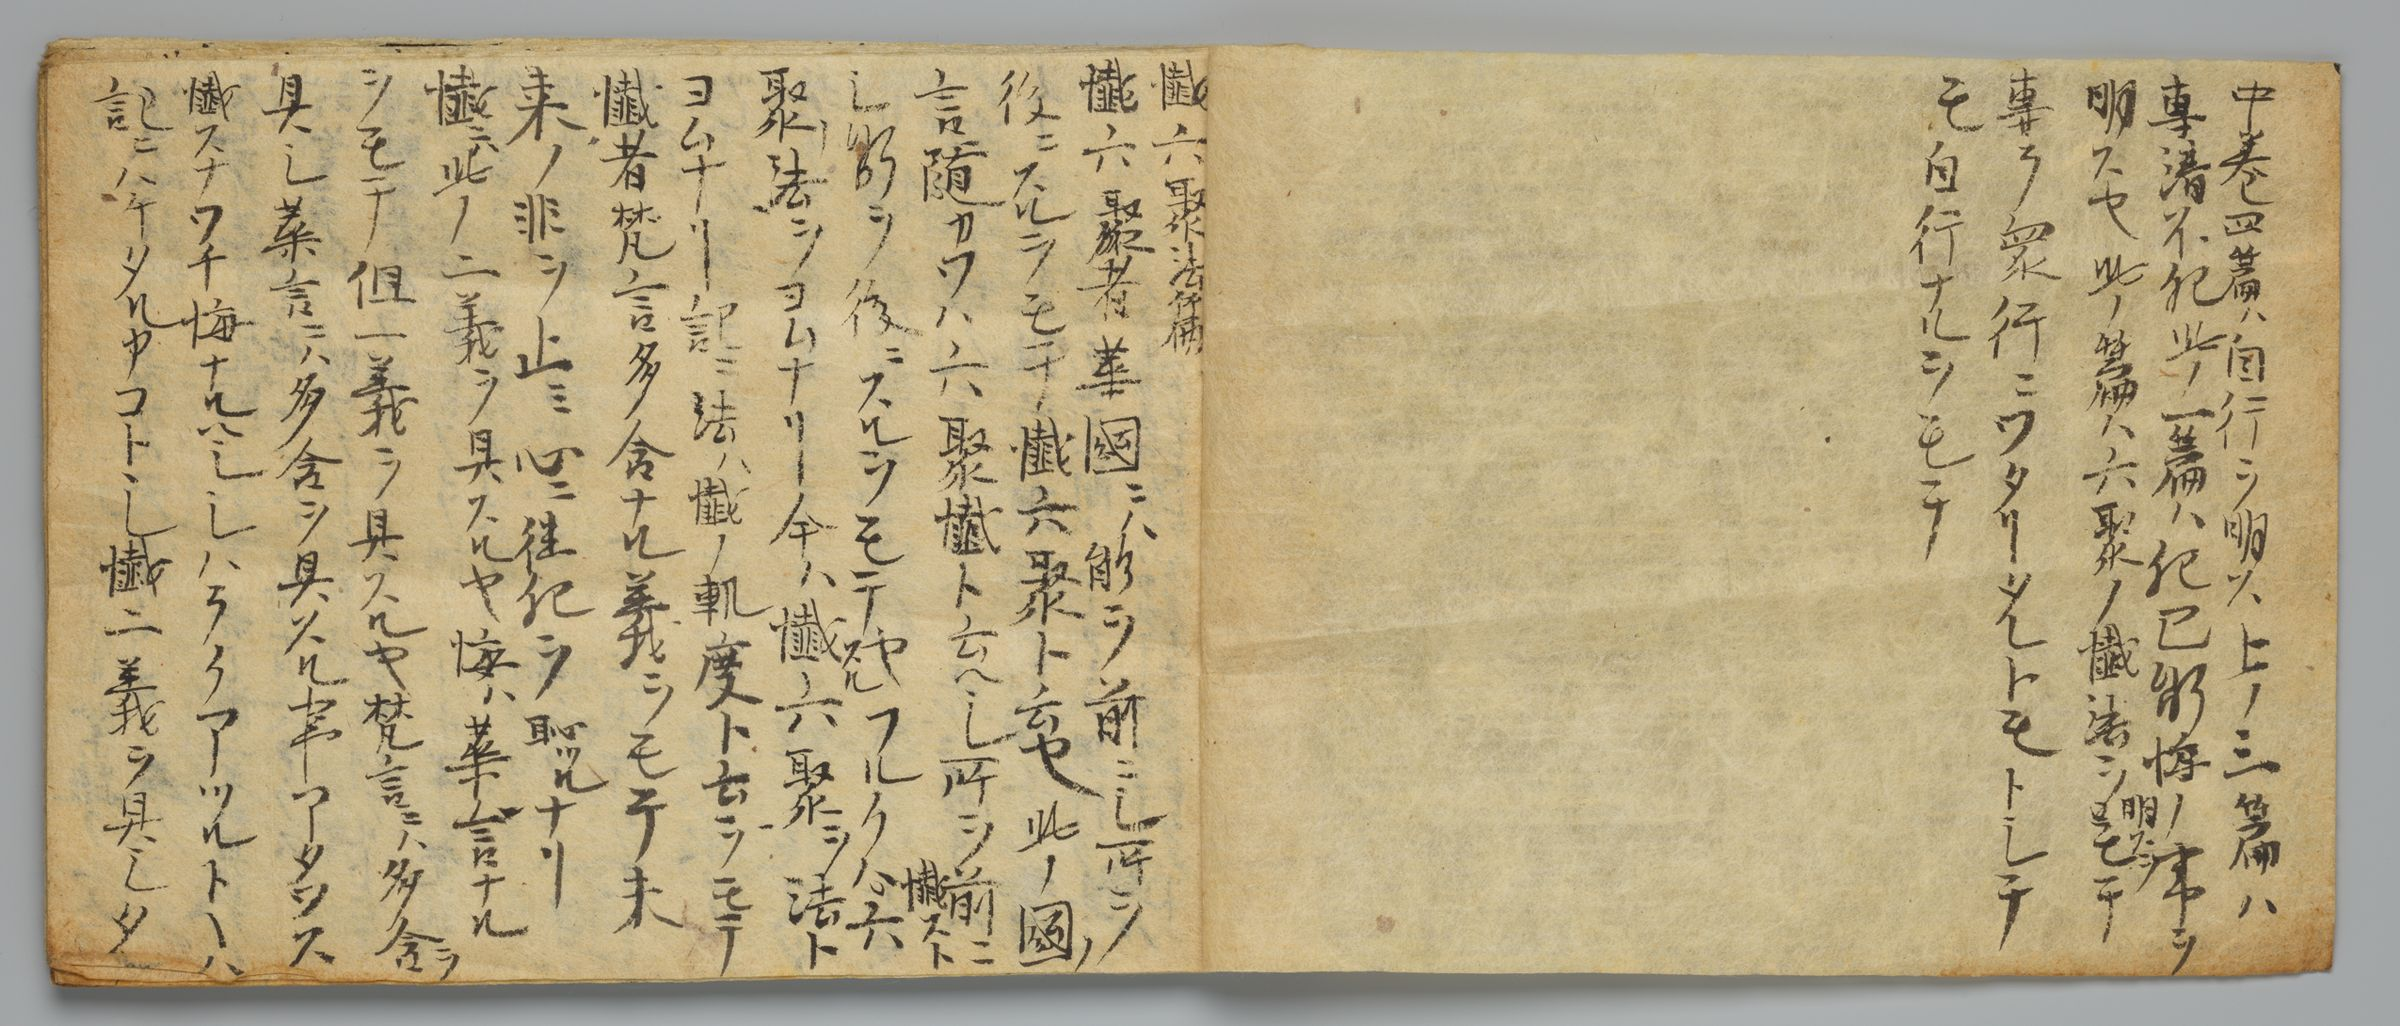 A Discussion Of The Liturgy Of The Six Assemblies (Sen Rokushūhōhen)